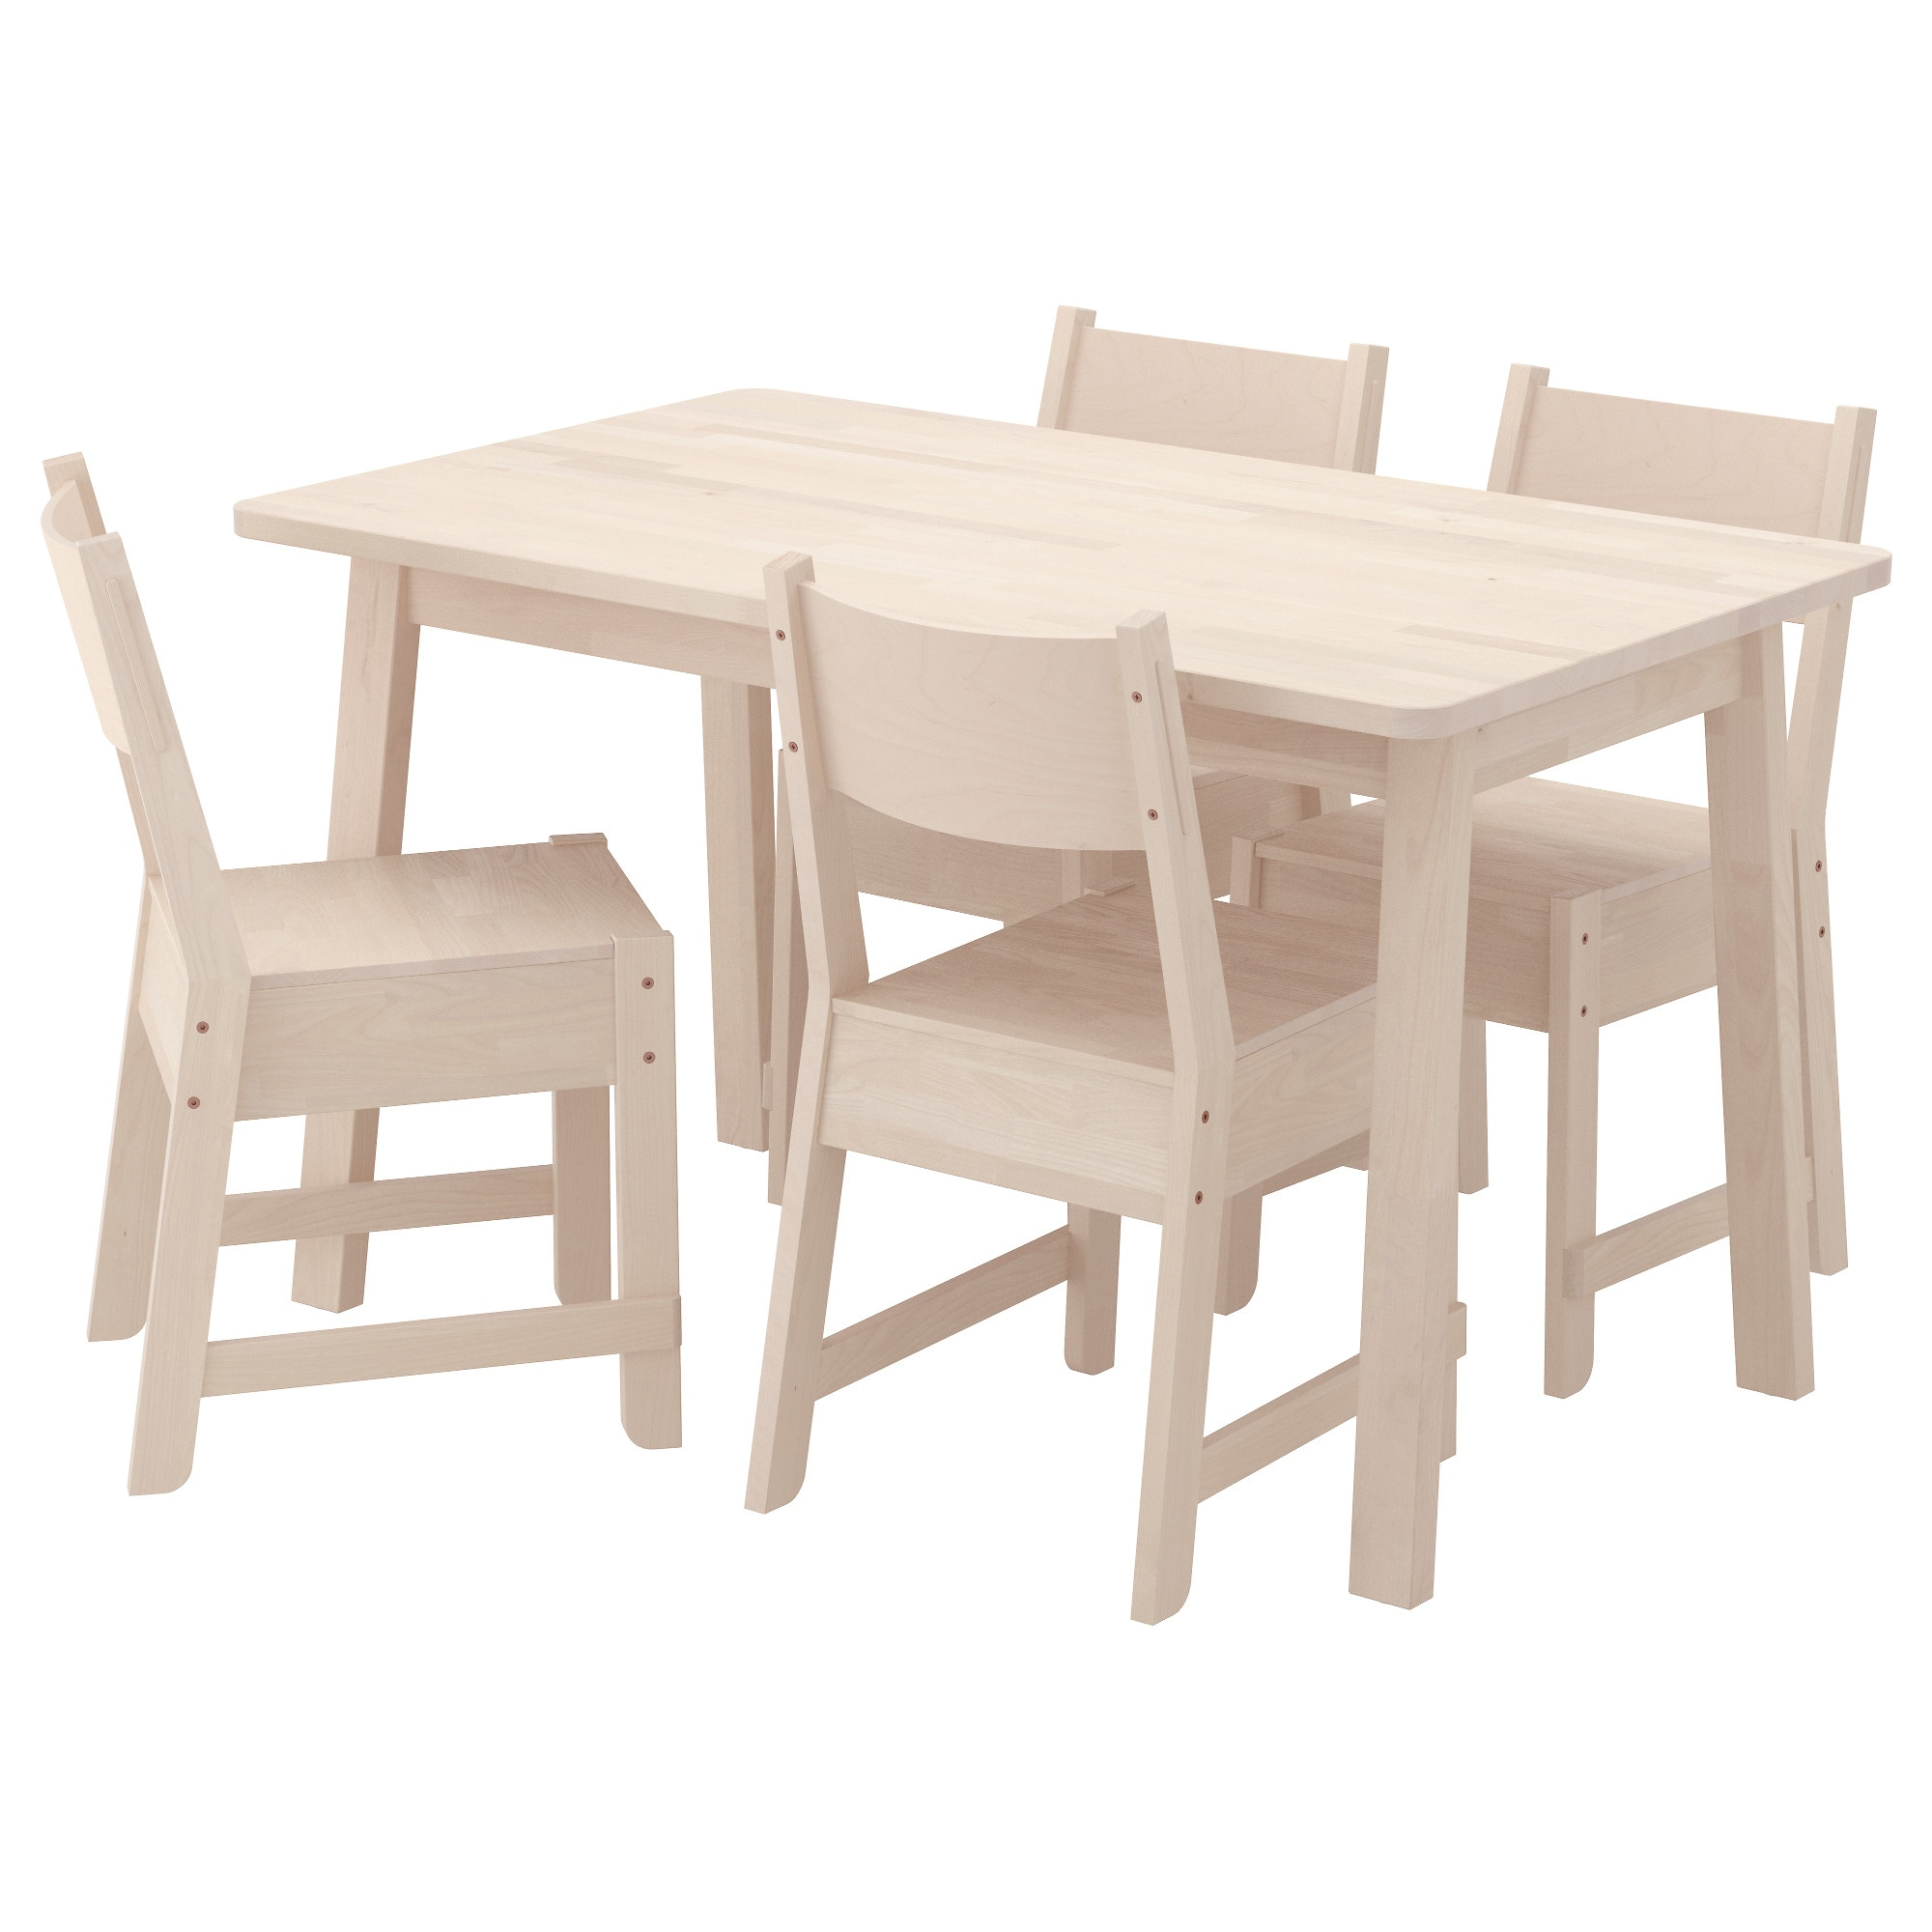 Café furniture Café chairs & Café tables IKEA